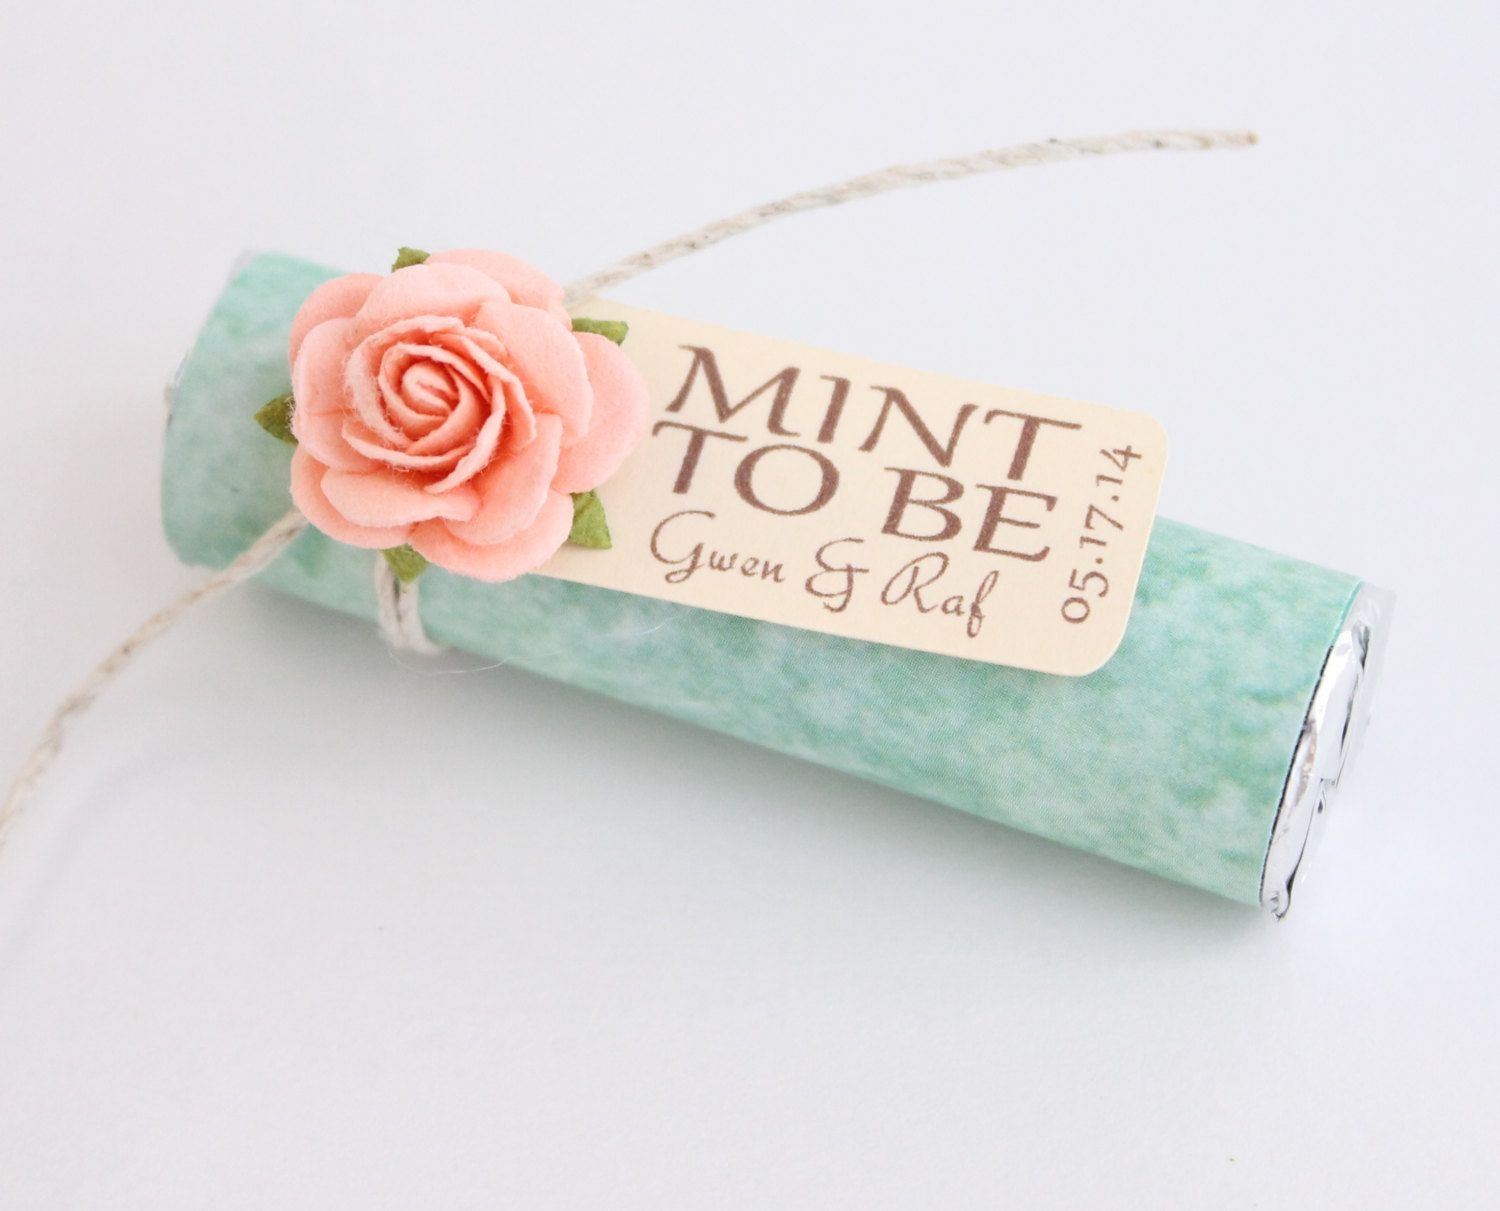 Mint Wedding Favors Set Of 24 Rolls To Be With Personalized Tag And Peach Green Light C